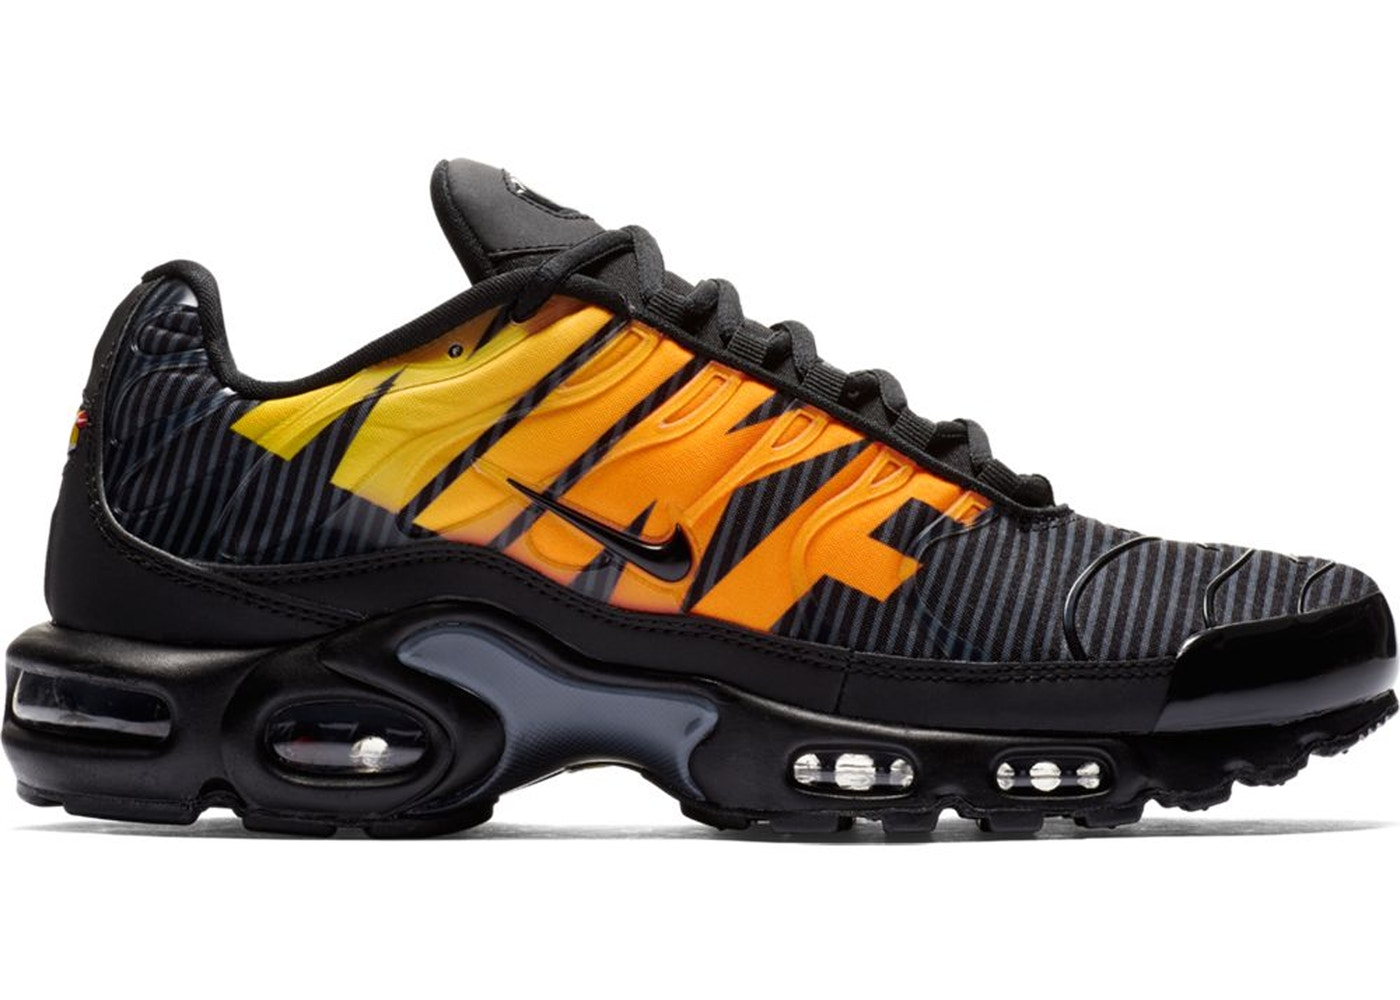 Nike Air Max Plus Mercurial Black Orange At0040 002